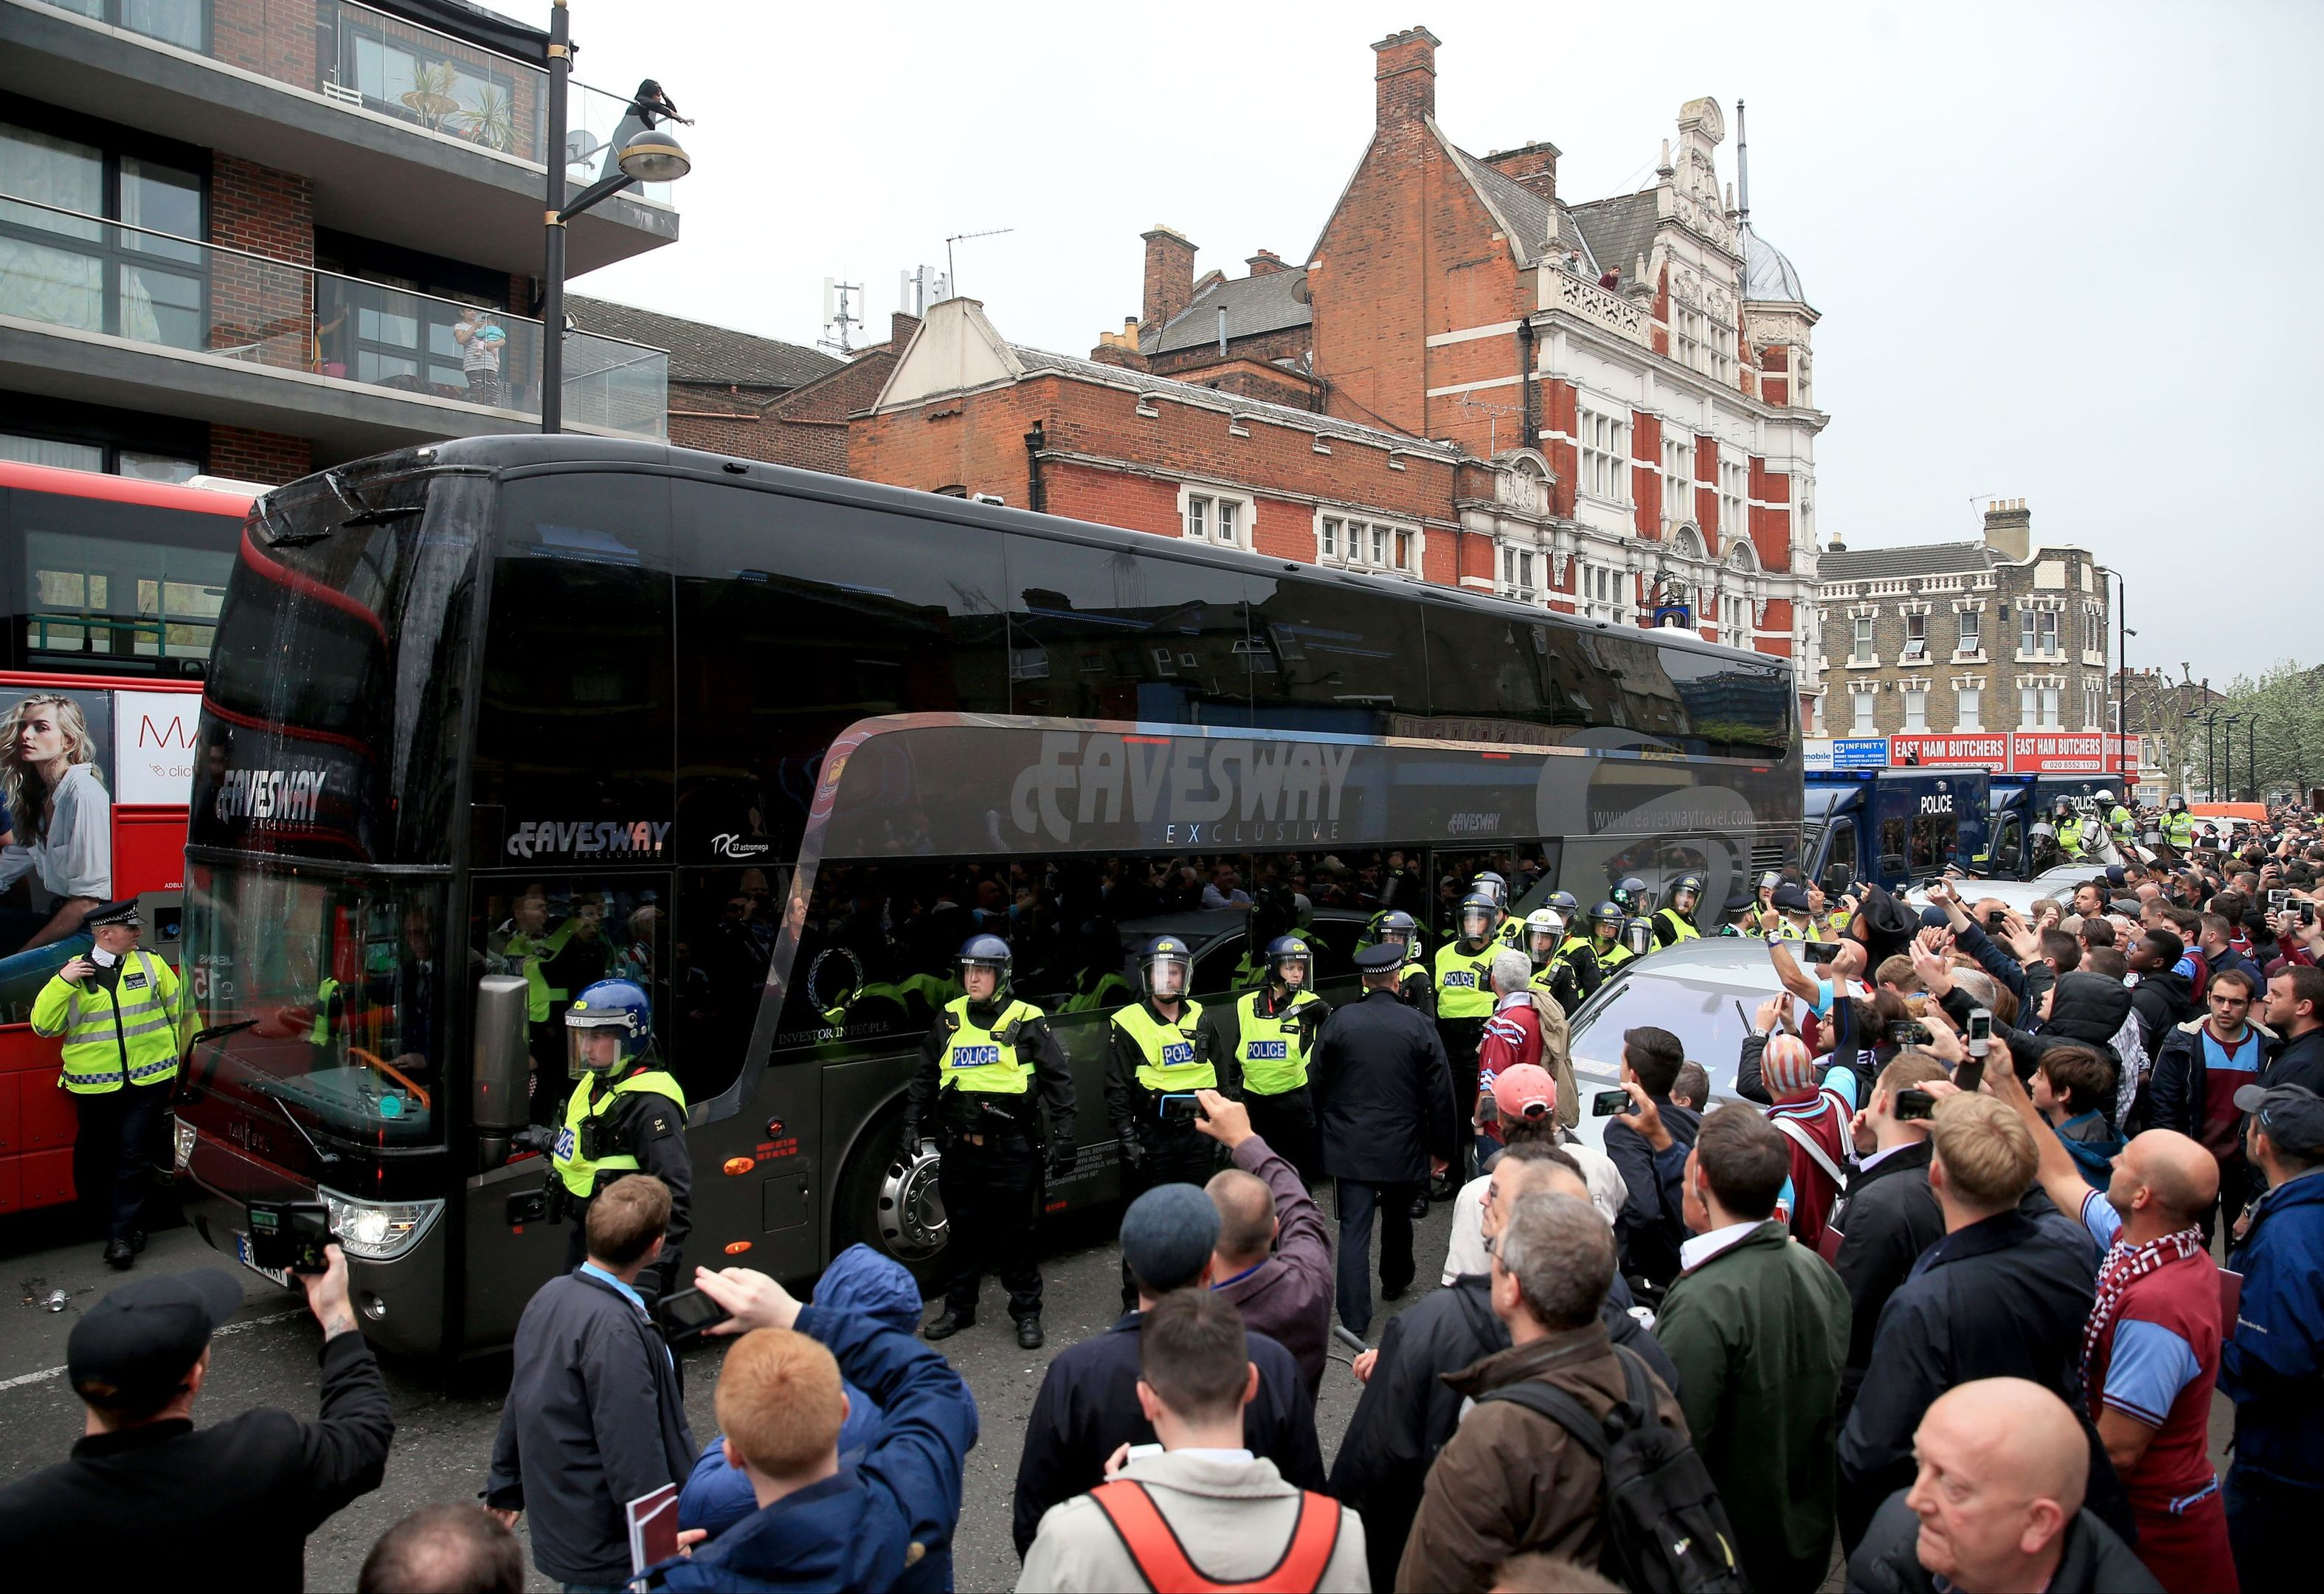 The Manchester United team coach was pelted with missiles ahead of their match with West Ham.